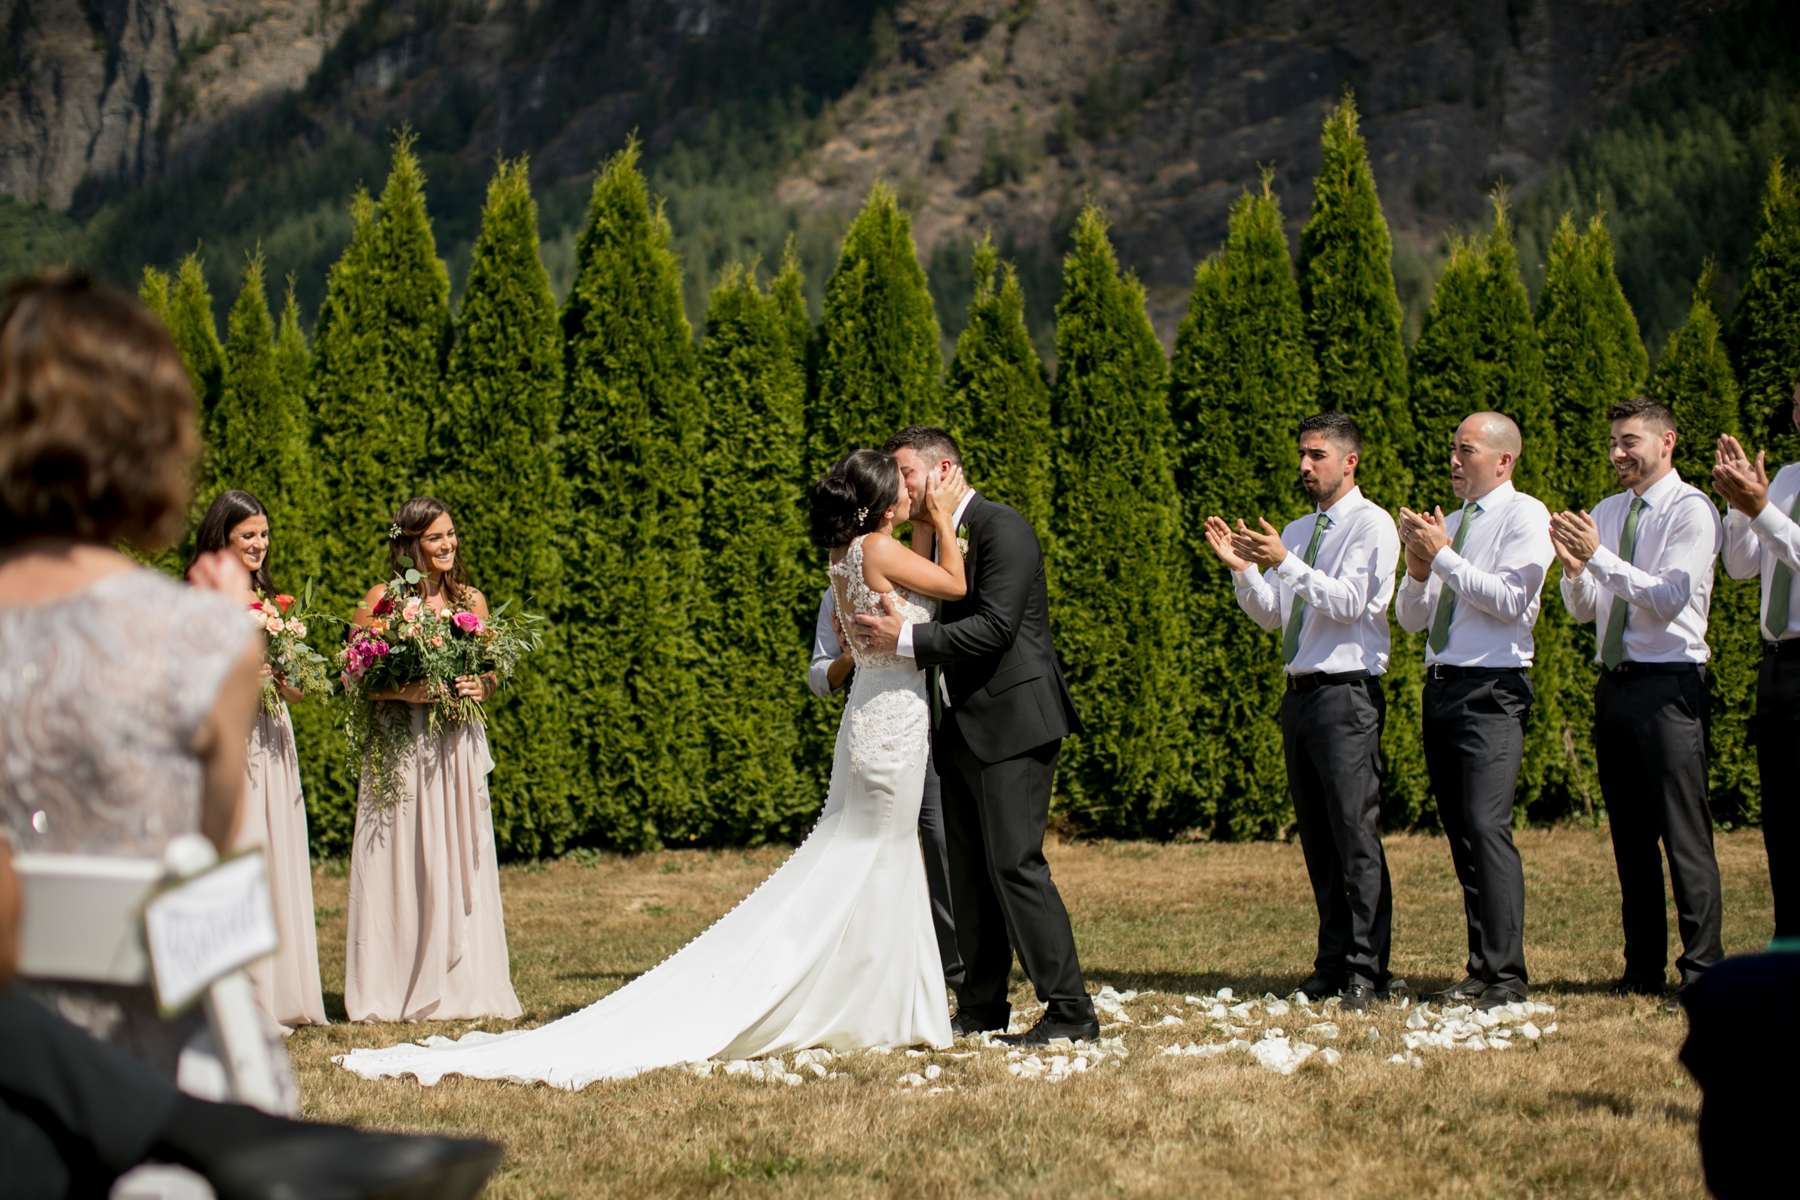 seatte, wedding, photographer, North Bend, Bybee Farms, Snoqualmie, issaqua,_0049.jpg